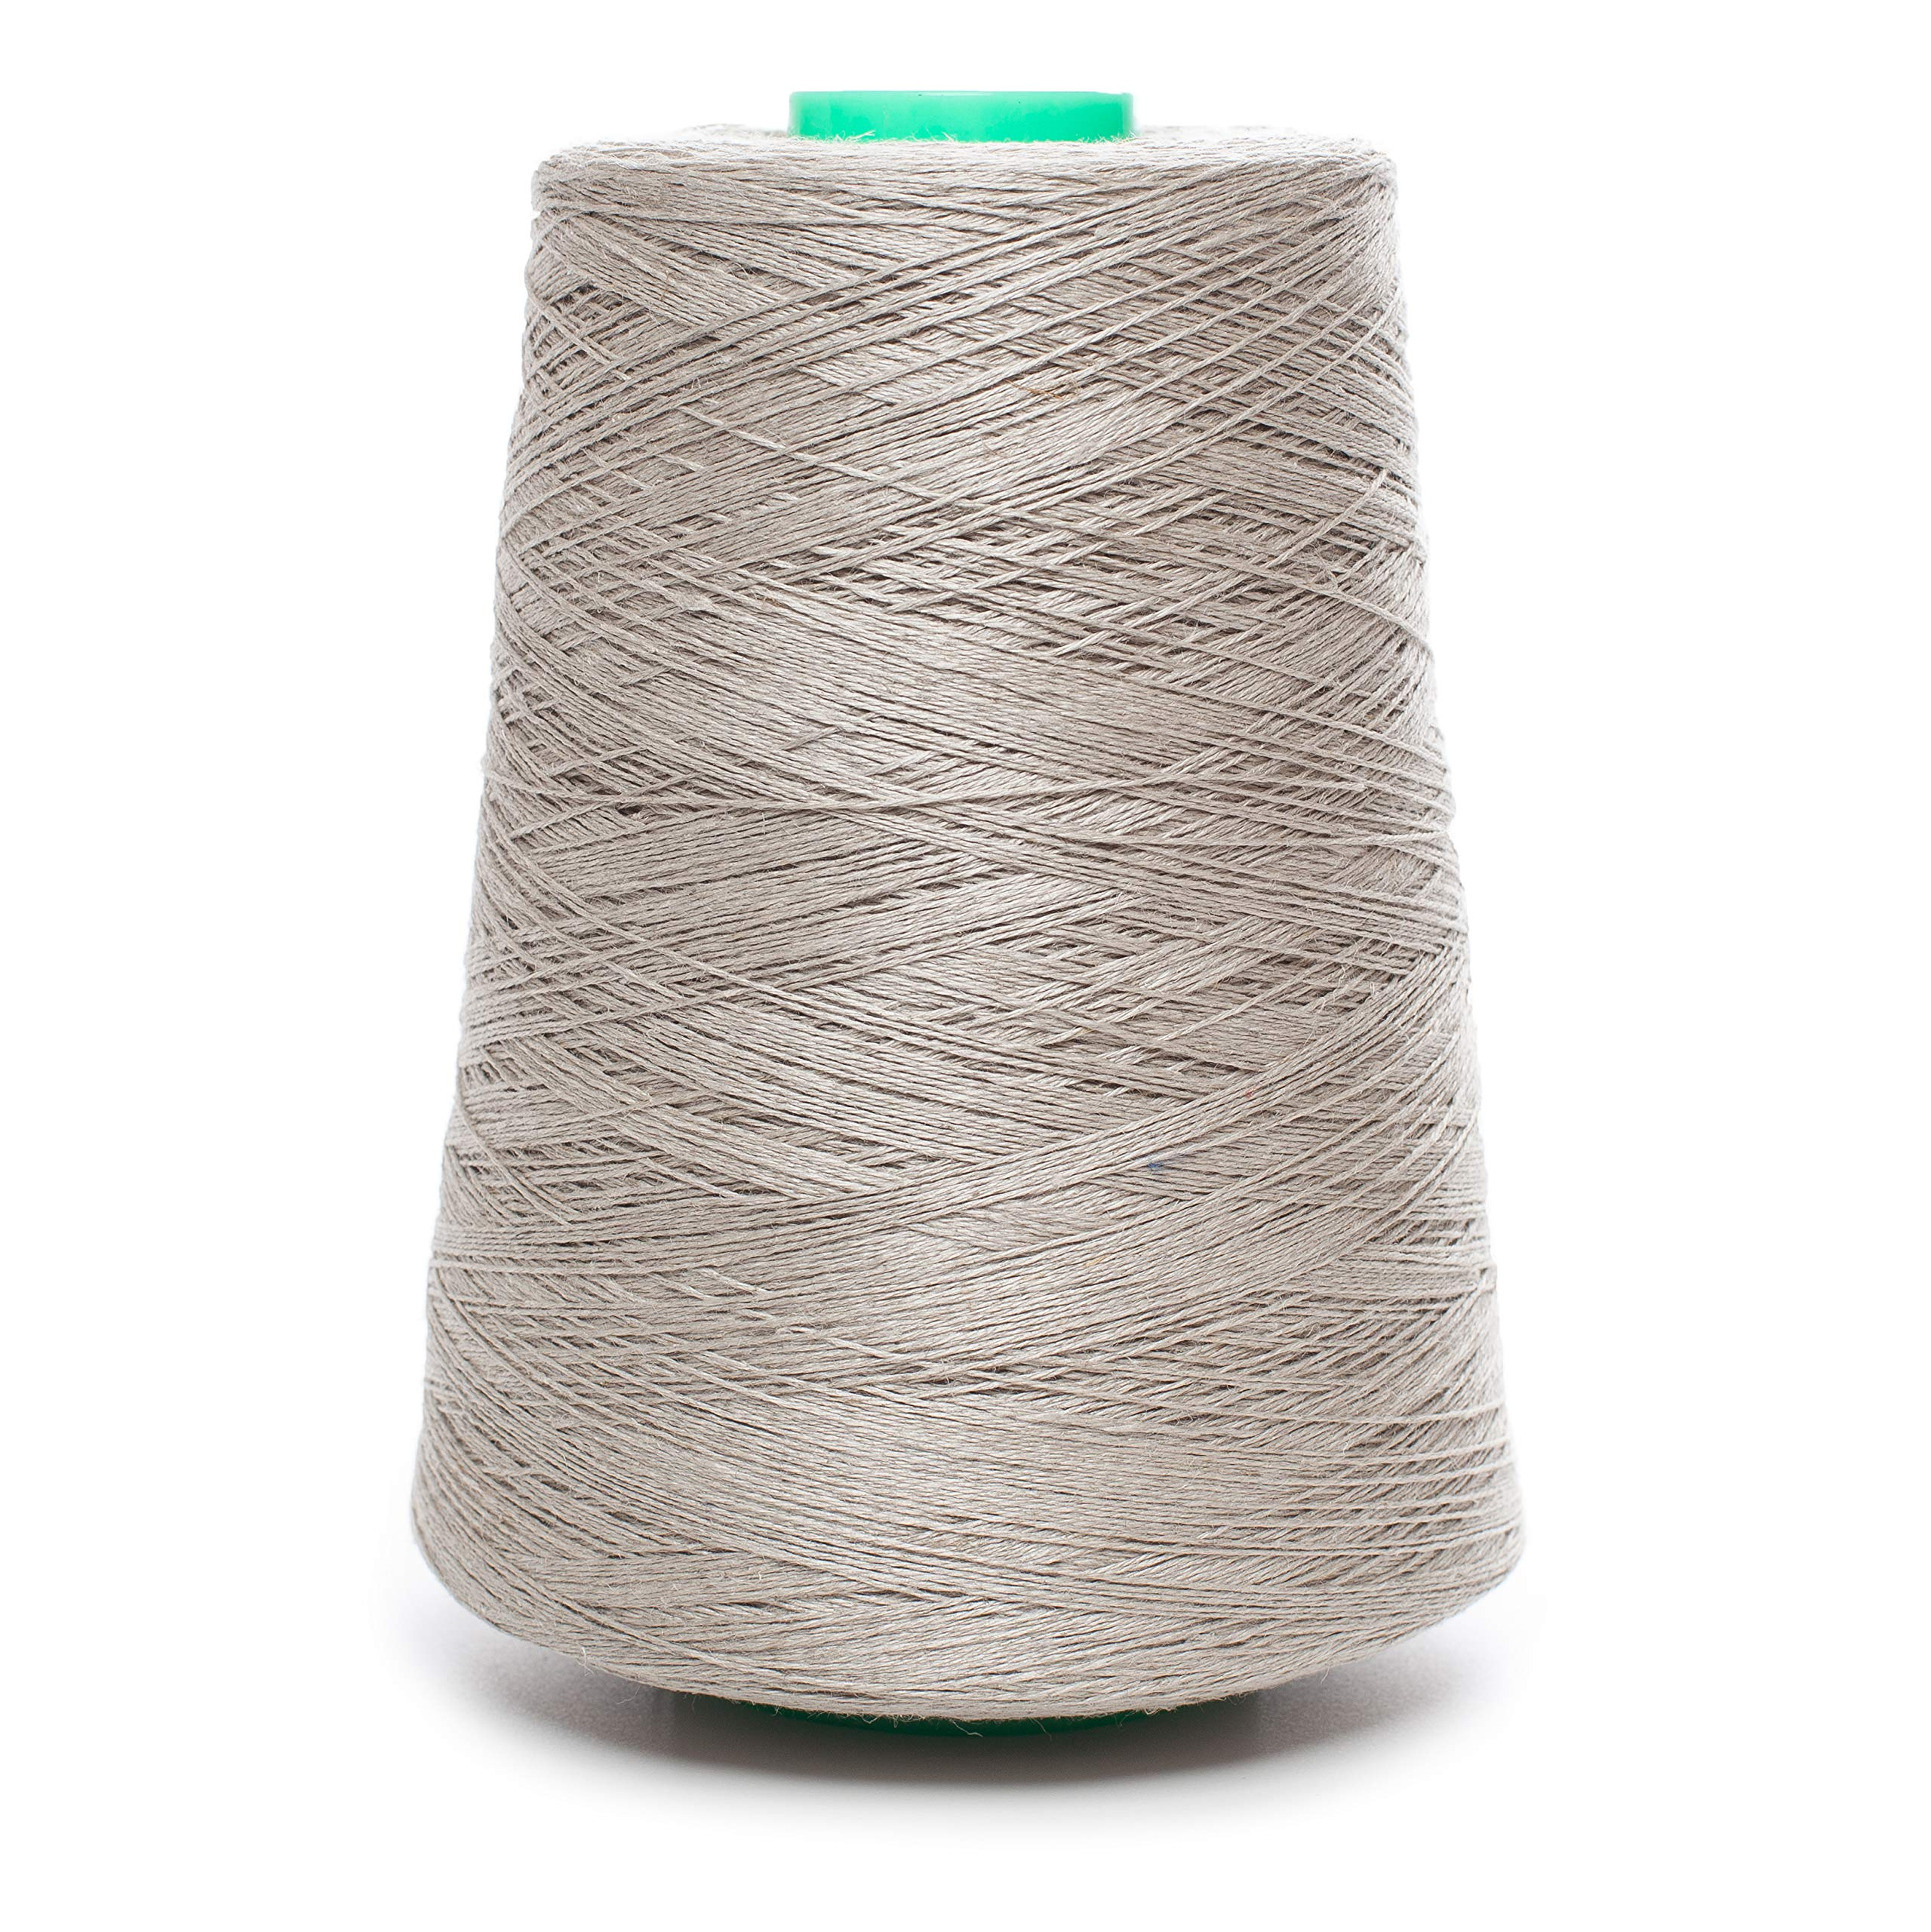 Linen Yarn Cone - 100% Flax Linen - 1 LBS - Natural Gray Yarn - 1-PLY, 2-PLY, 3 PLY, 4-PLY - Sewing Weaving Crochet Embroidering (1-PLY Yarn)